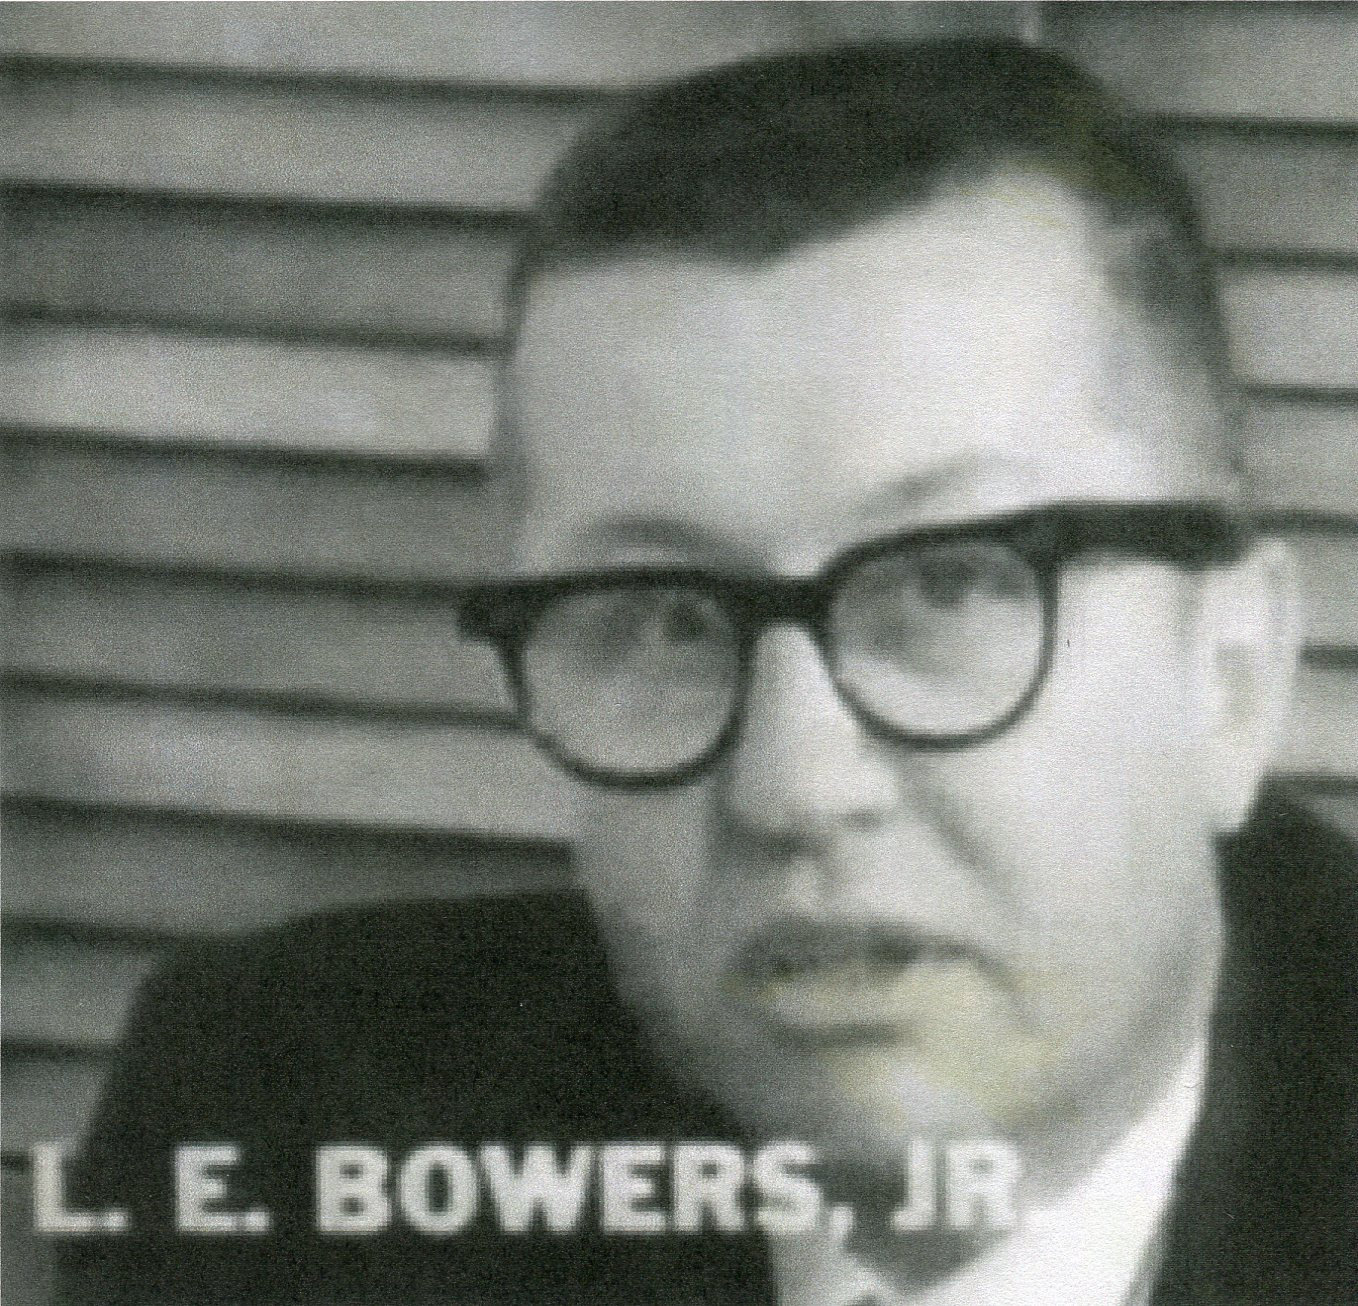 WitnessBowers